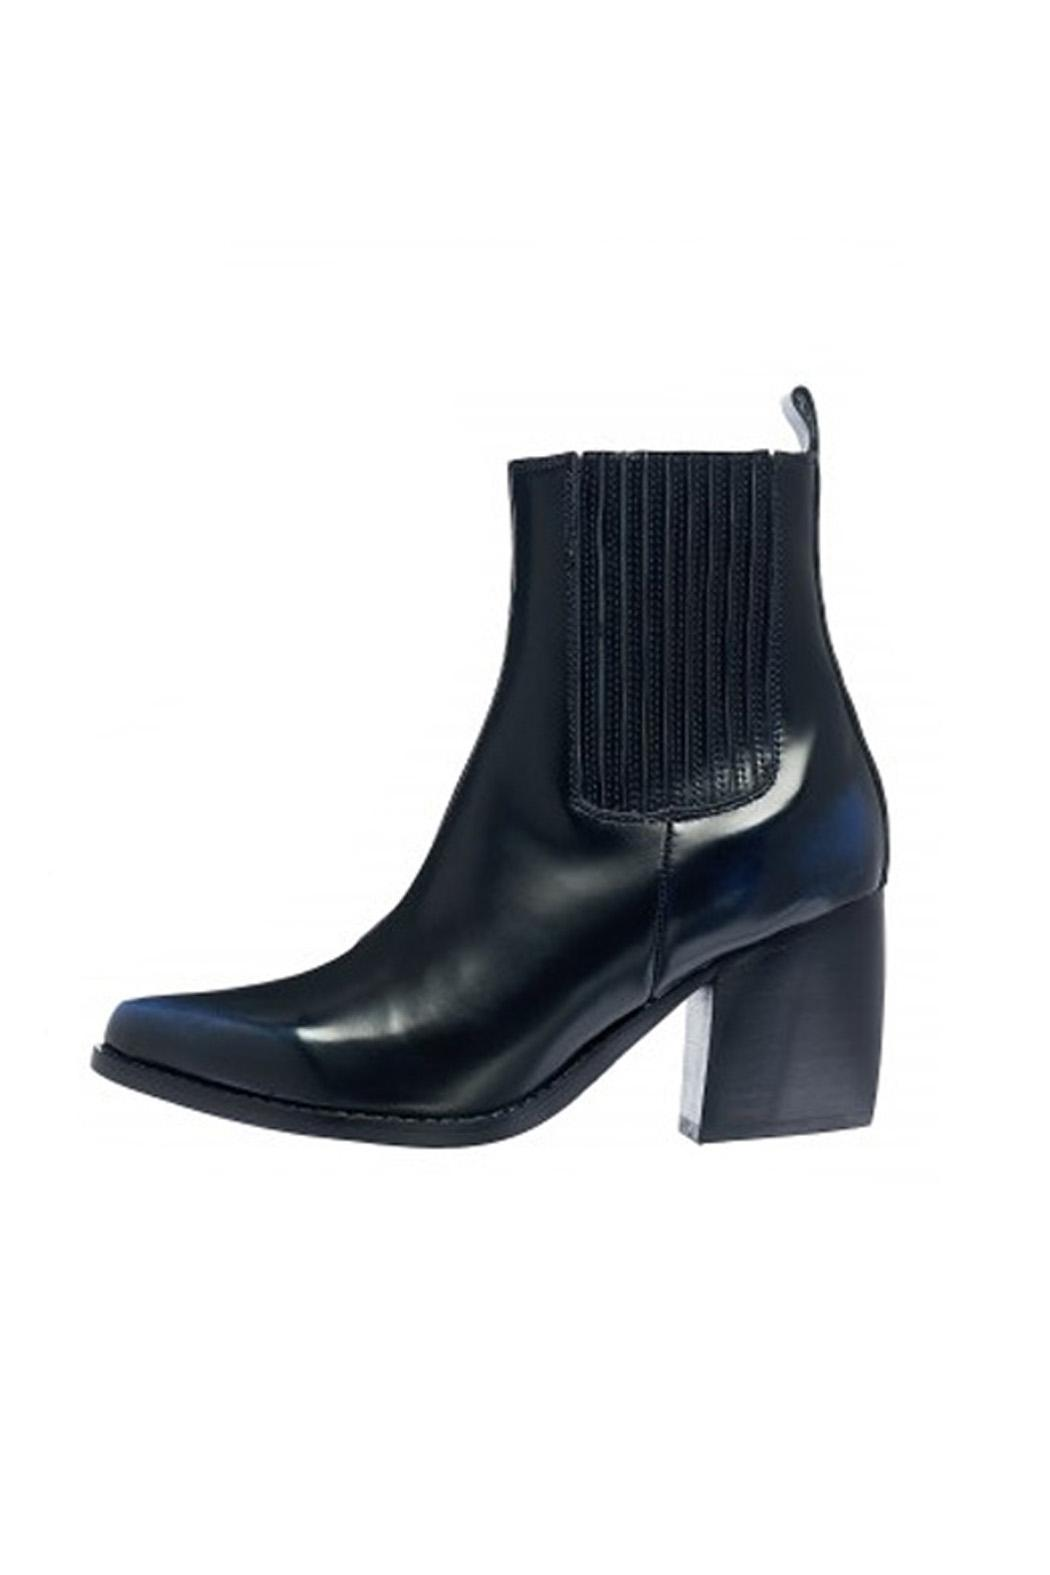 Jeffrey Campbell Black-Navy Western Boot - Main Image